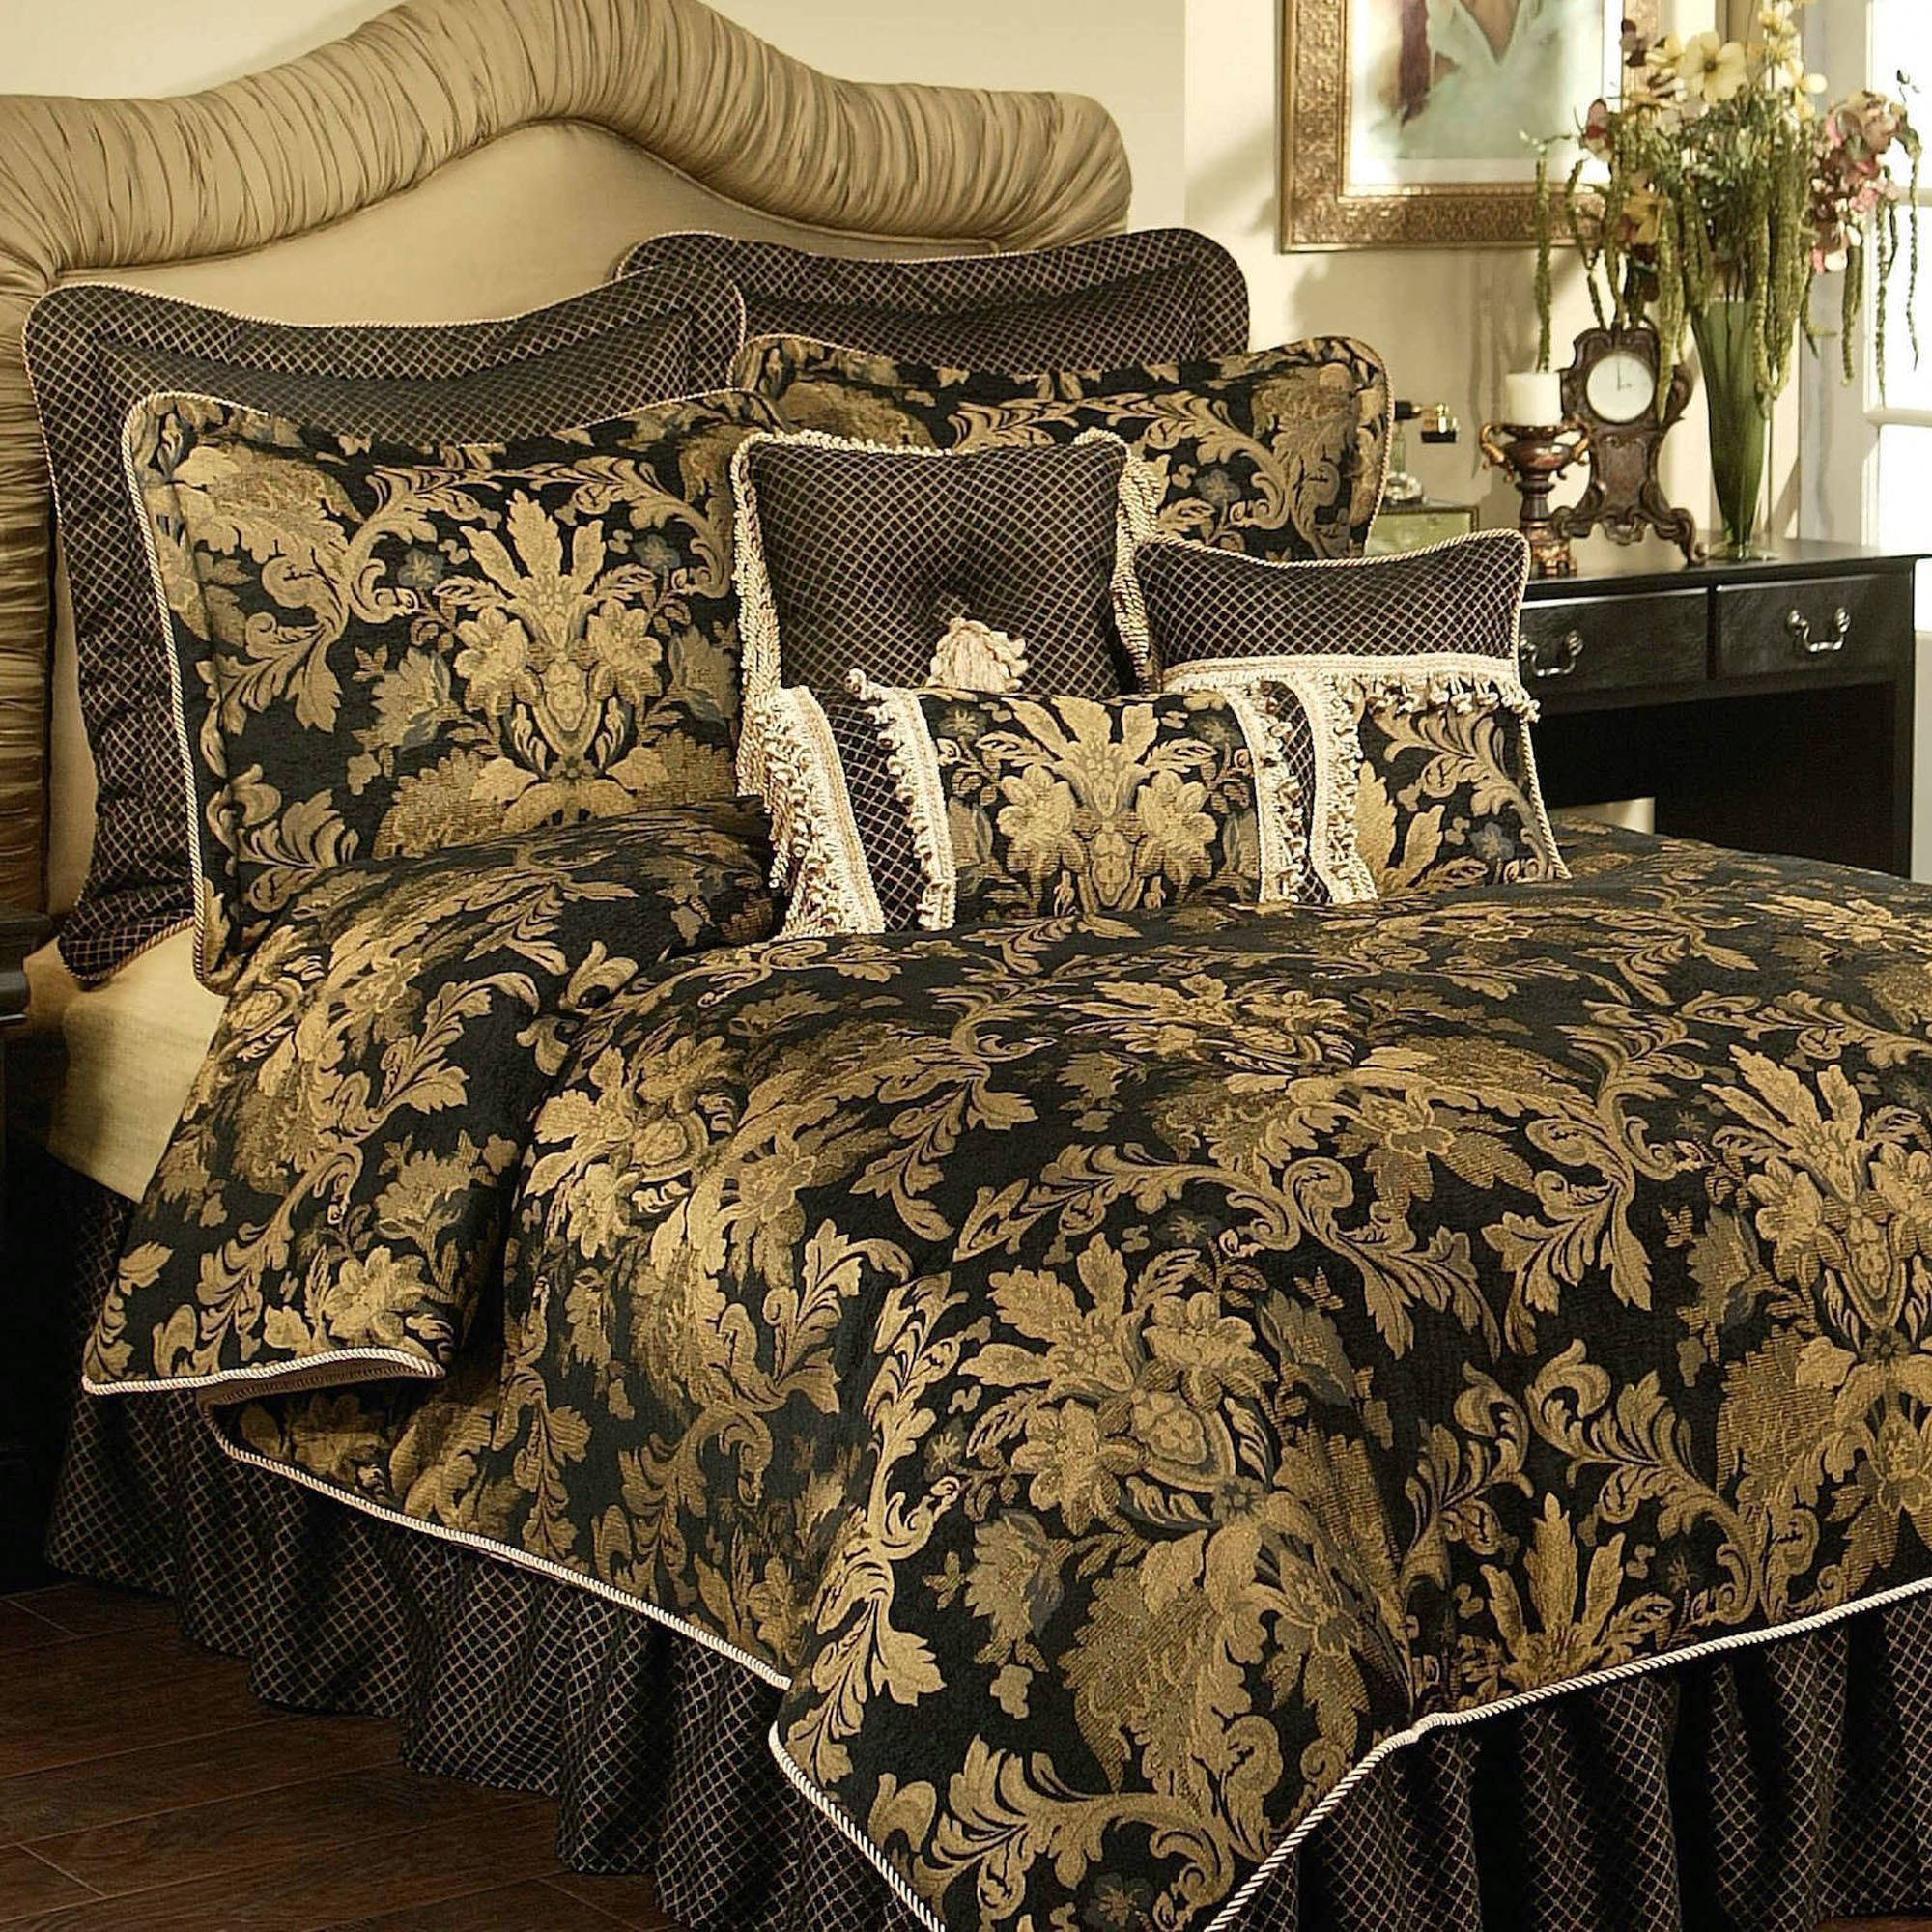 Victorian Bedding Lismore Black And Gold Damask Comforter Bedding From Austin Horn Classics